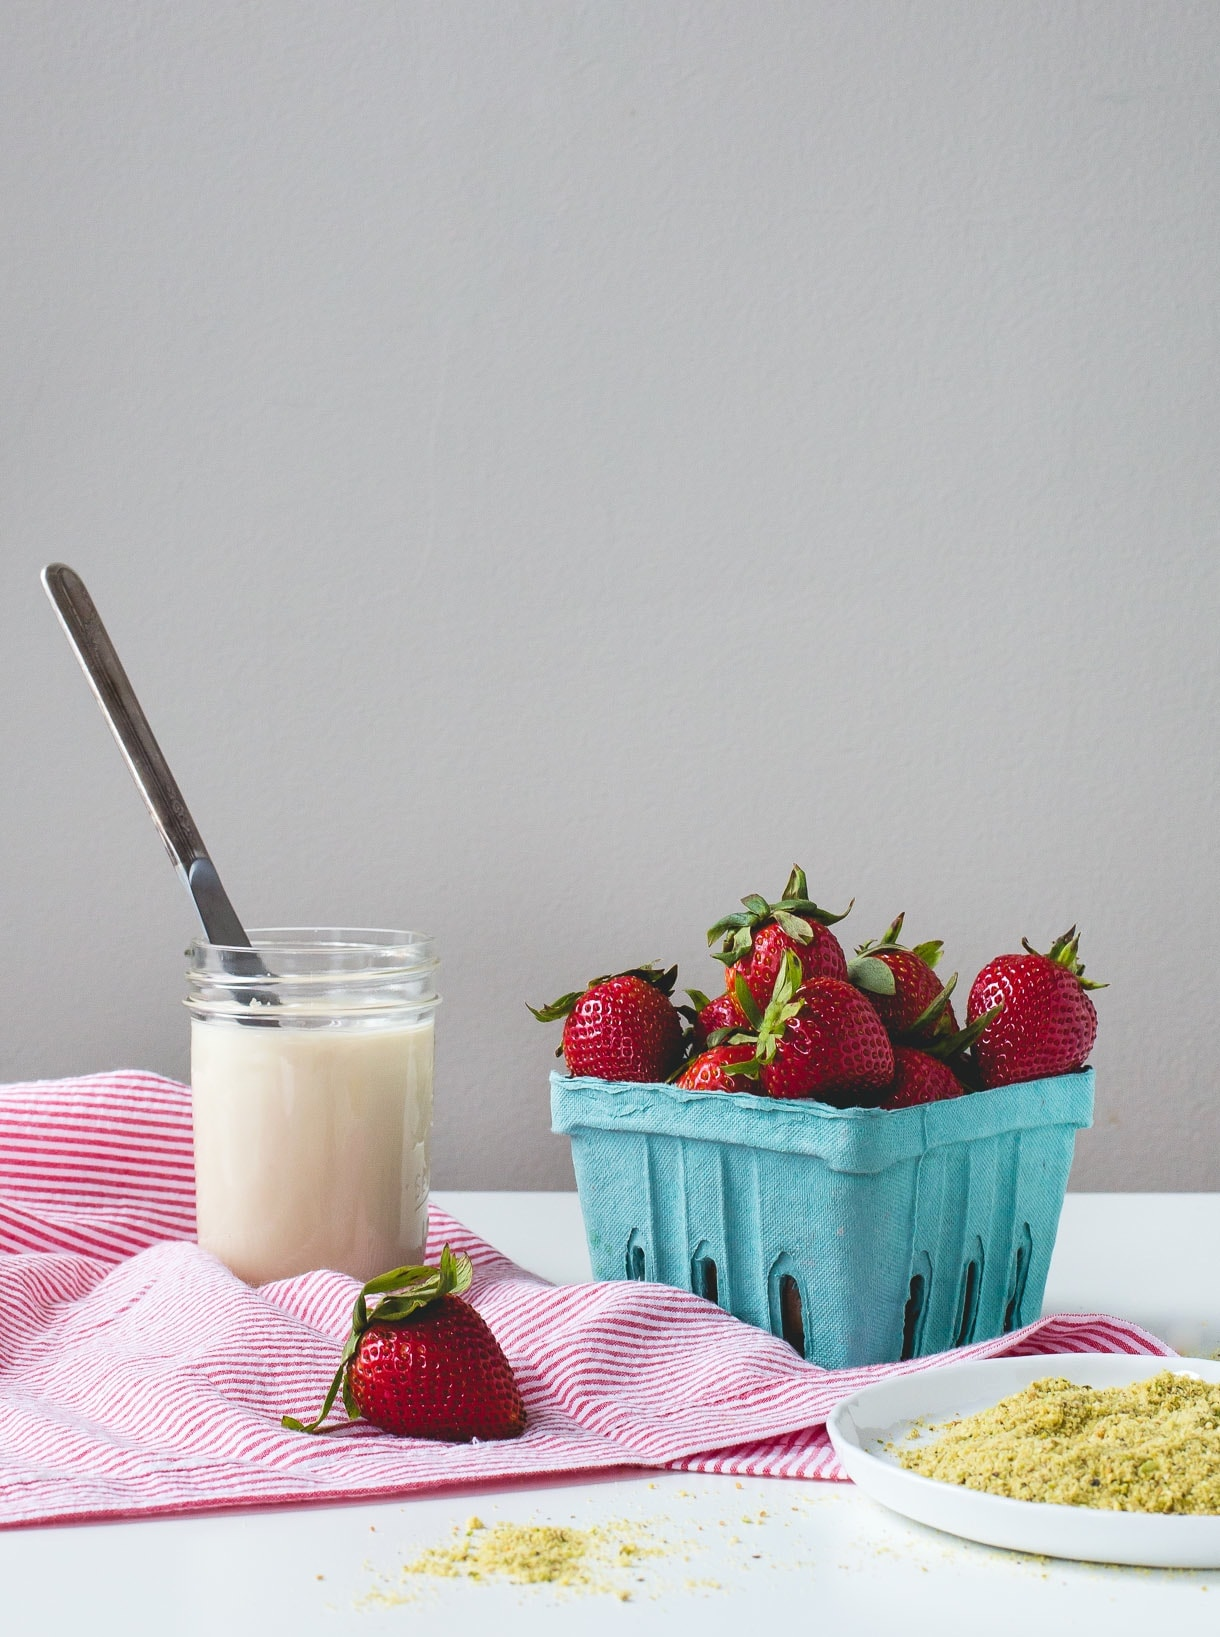 3 Ingredient Coconut Butter Dipped Strawberries with Pistachio Dust